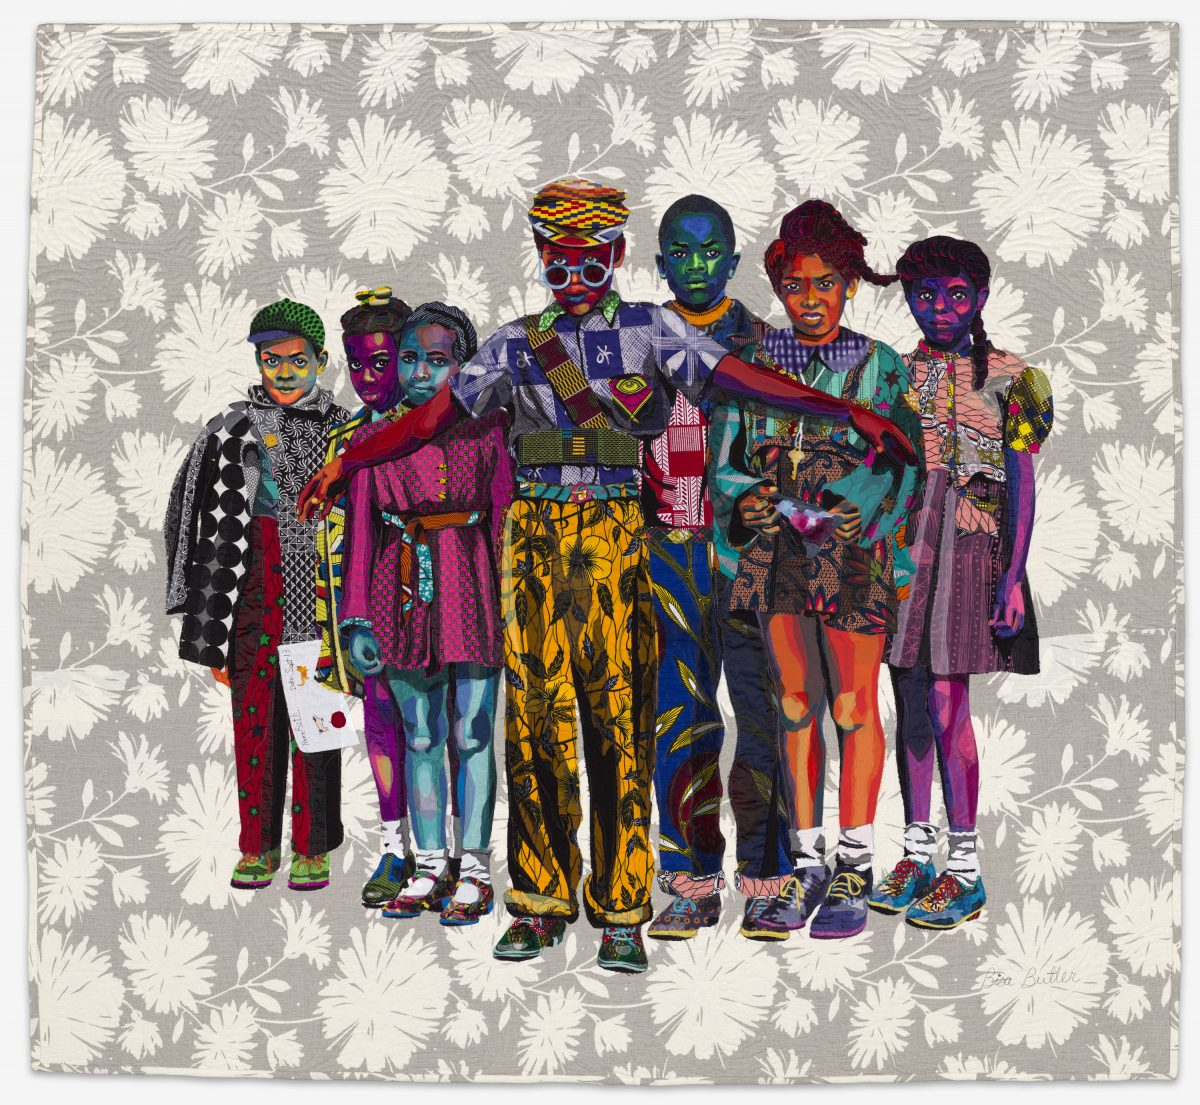 The Safety Patrol 2018. Courtesy the artist and Art Institute of Chicago